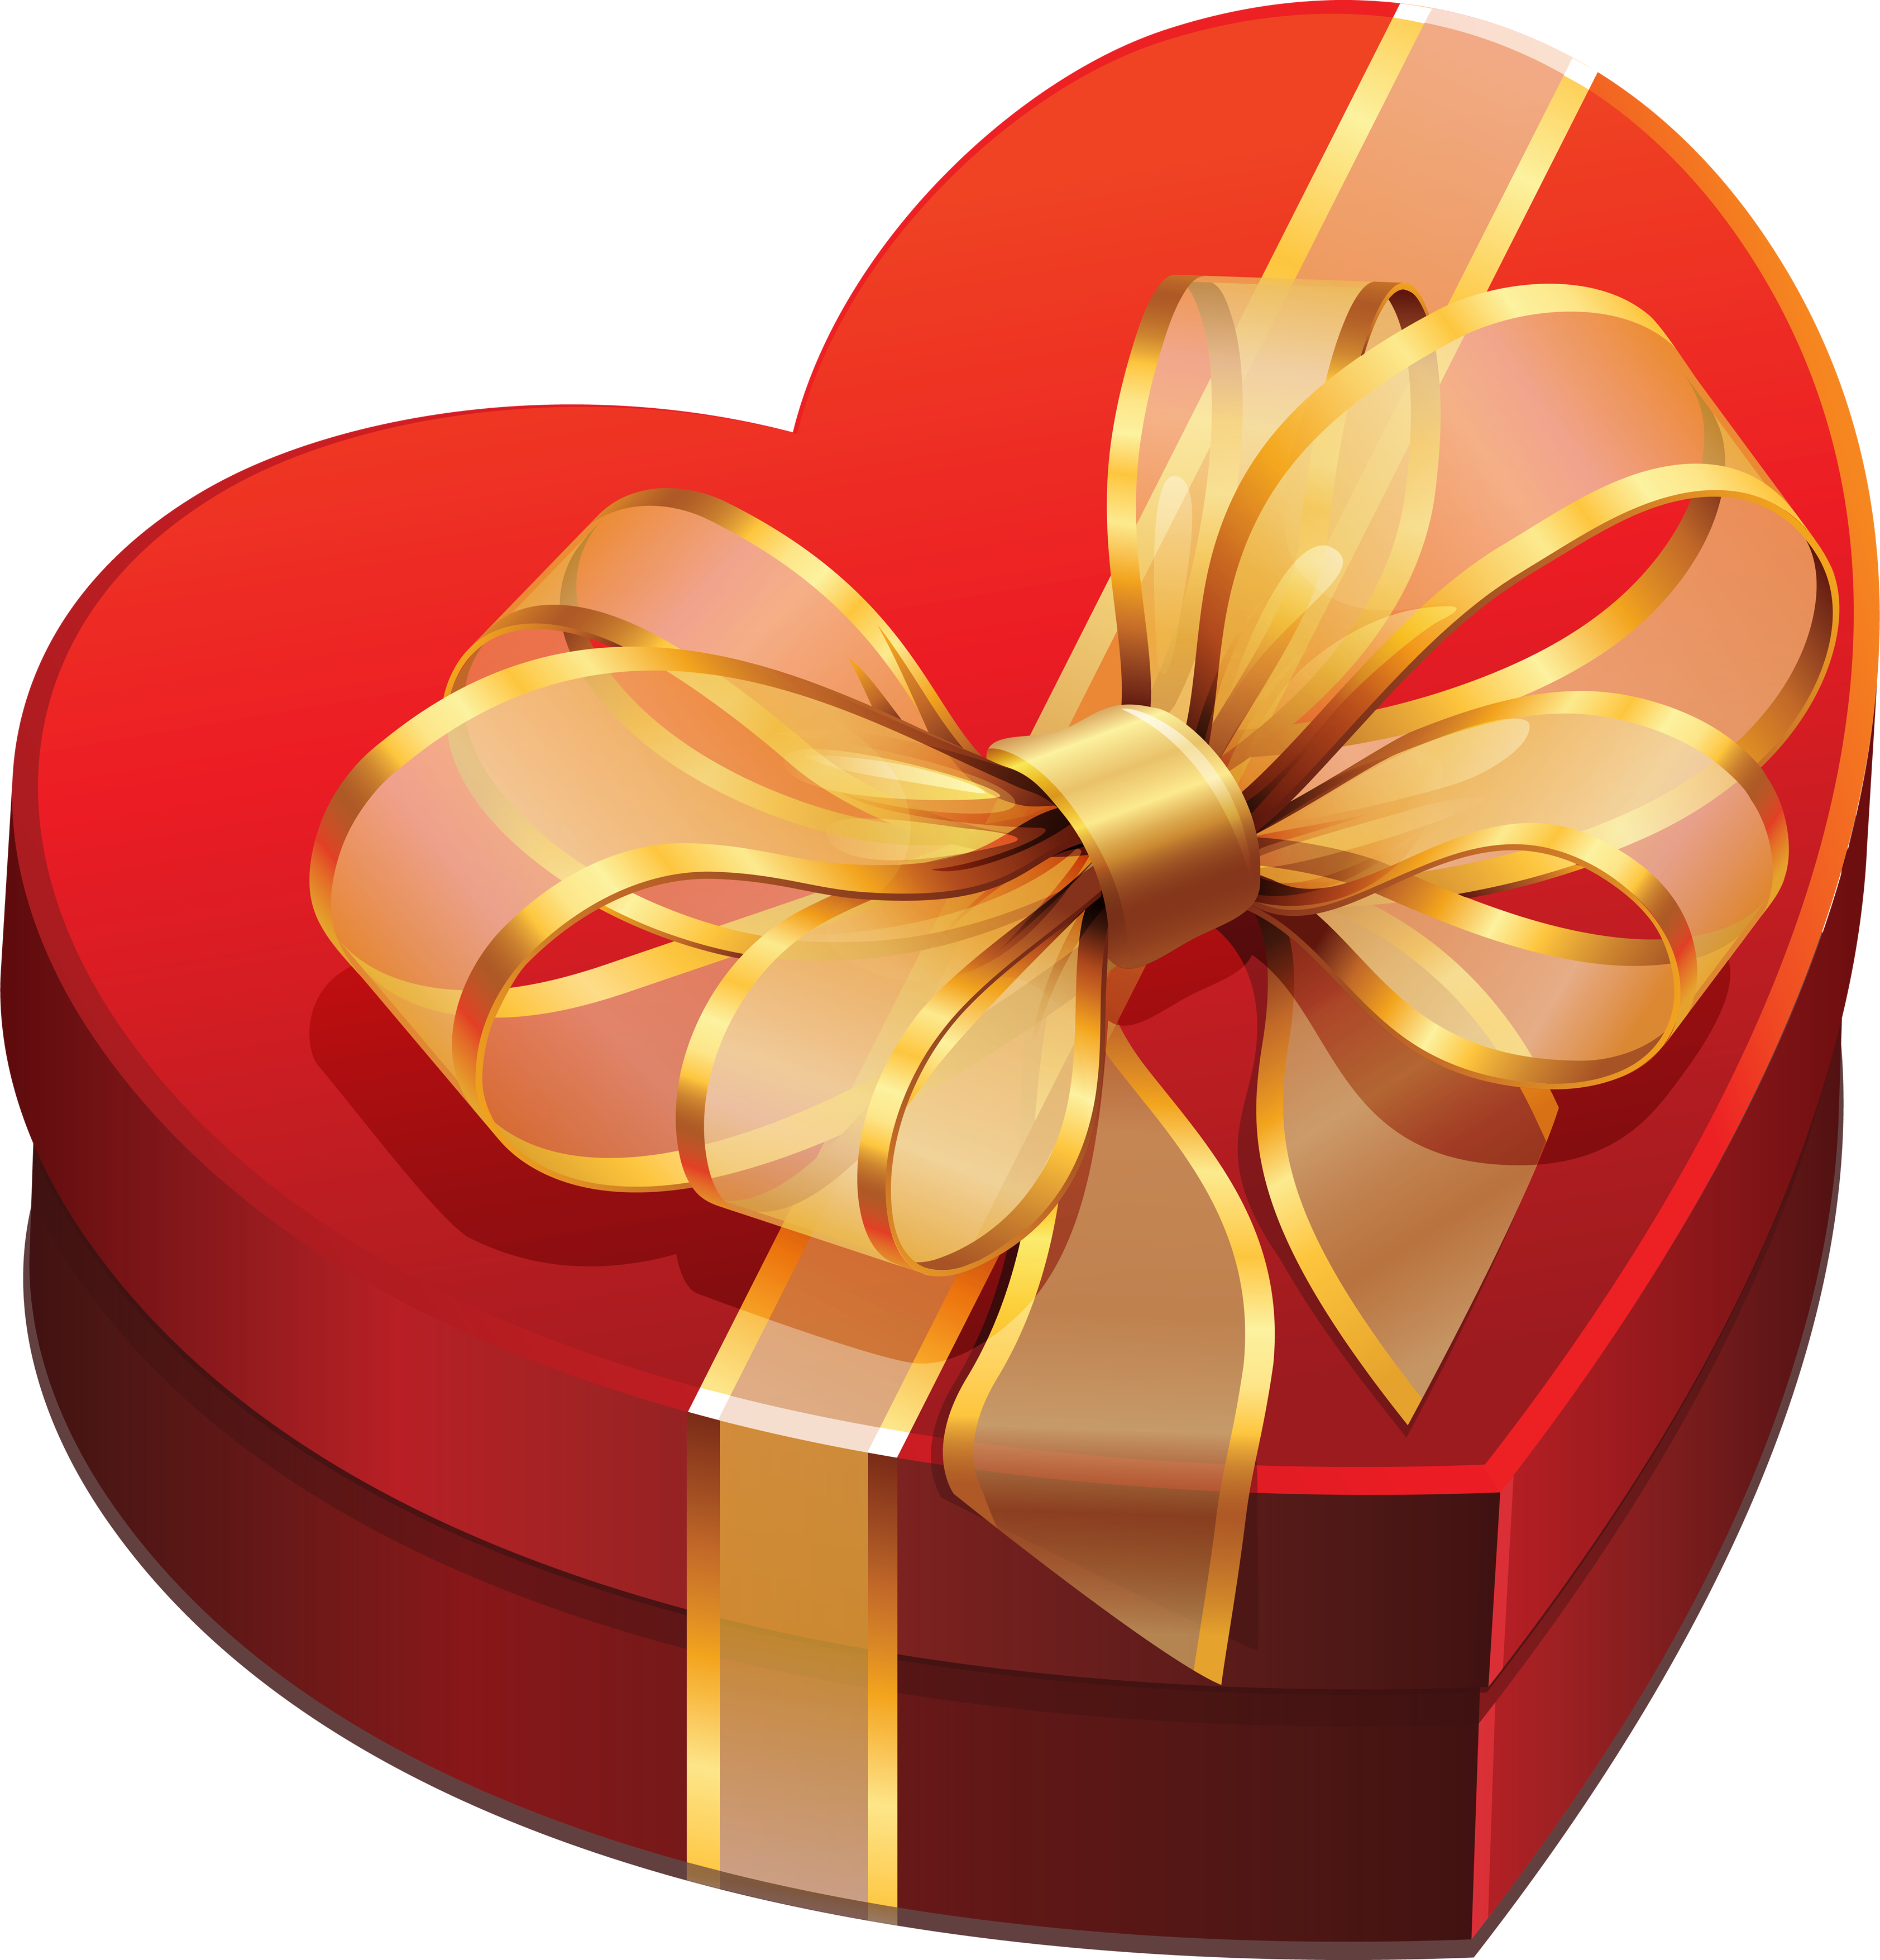 Download gift png picture hq png image freepngimg download png image gift png picture 546 negle Images